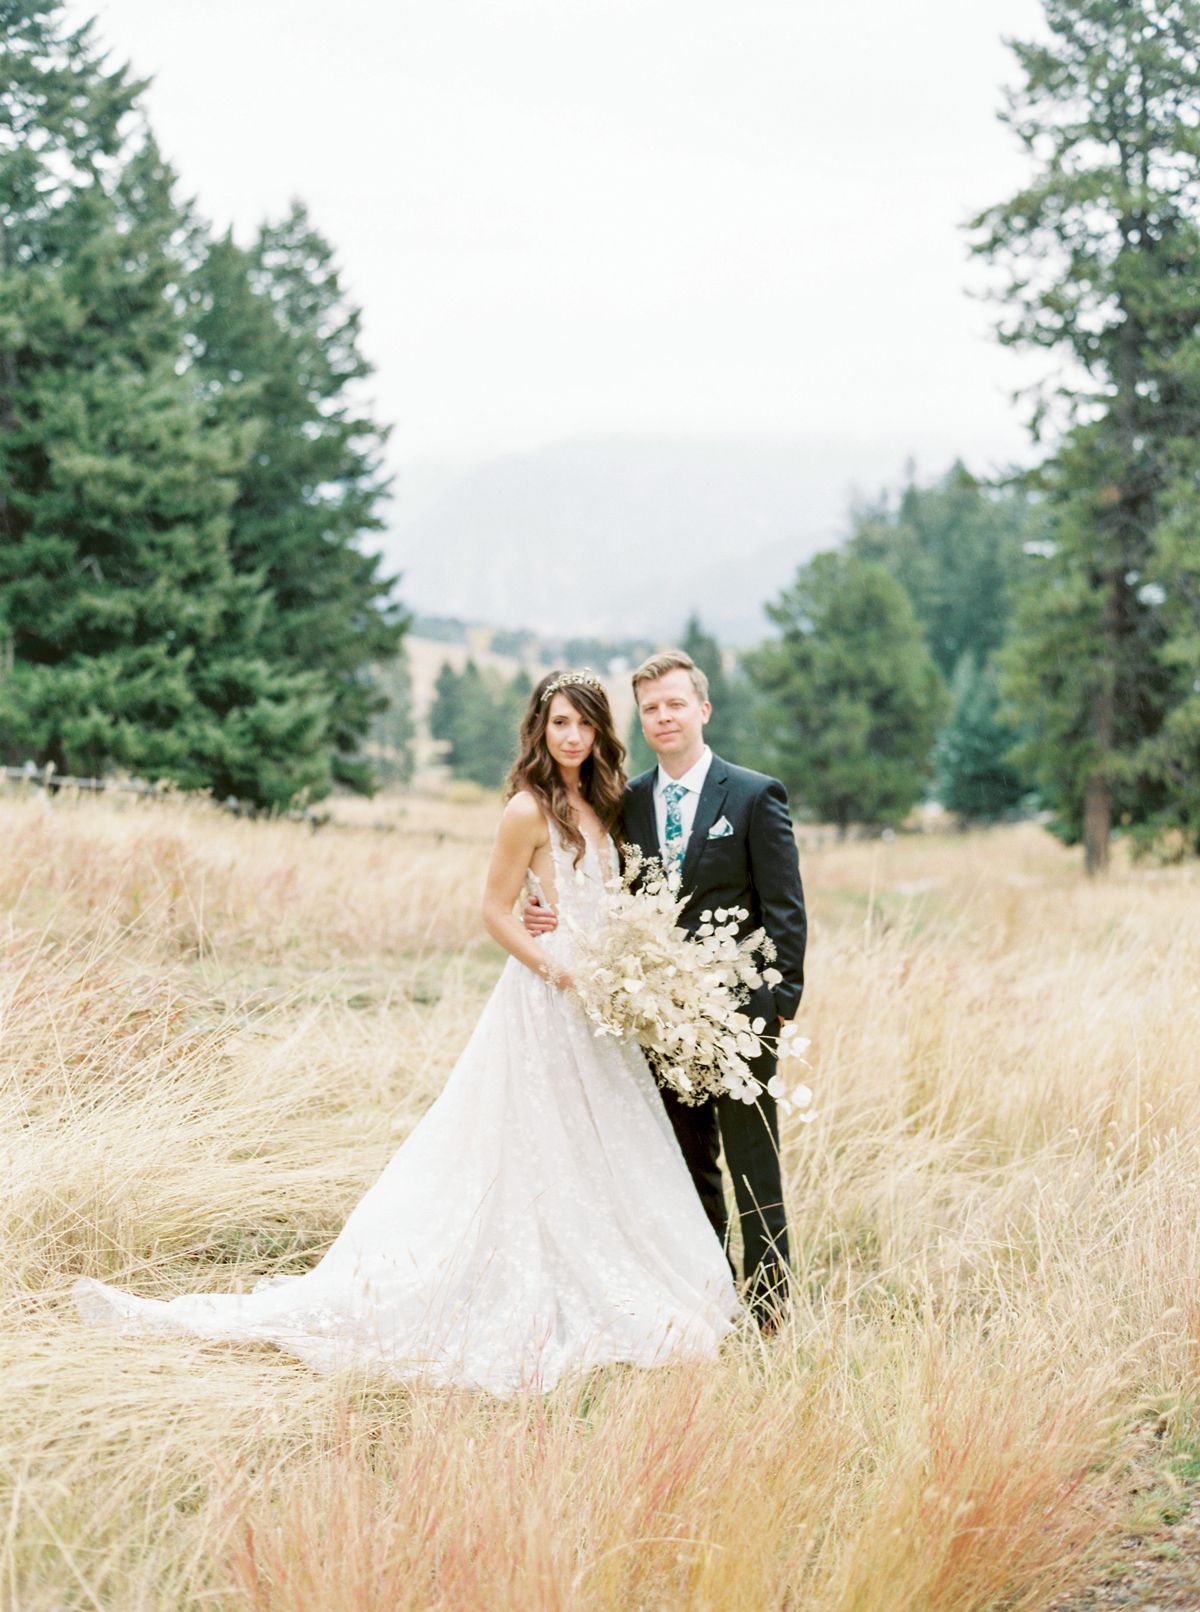 bride and groom in field with pine trees in background